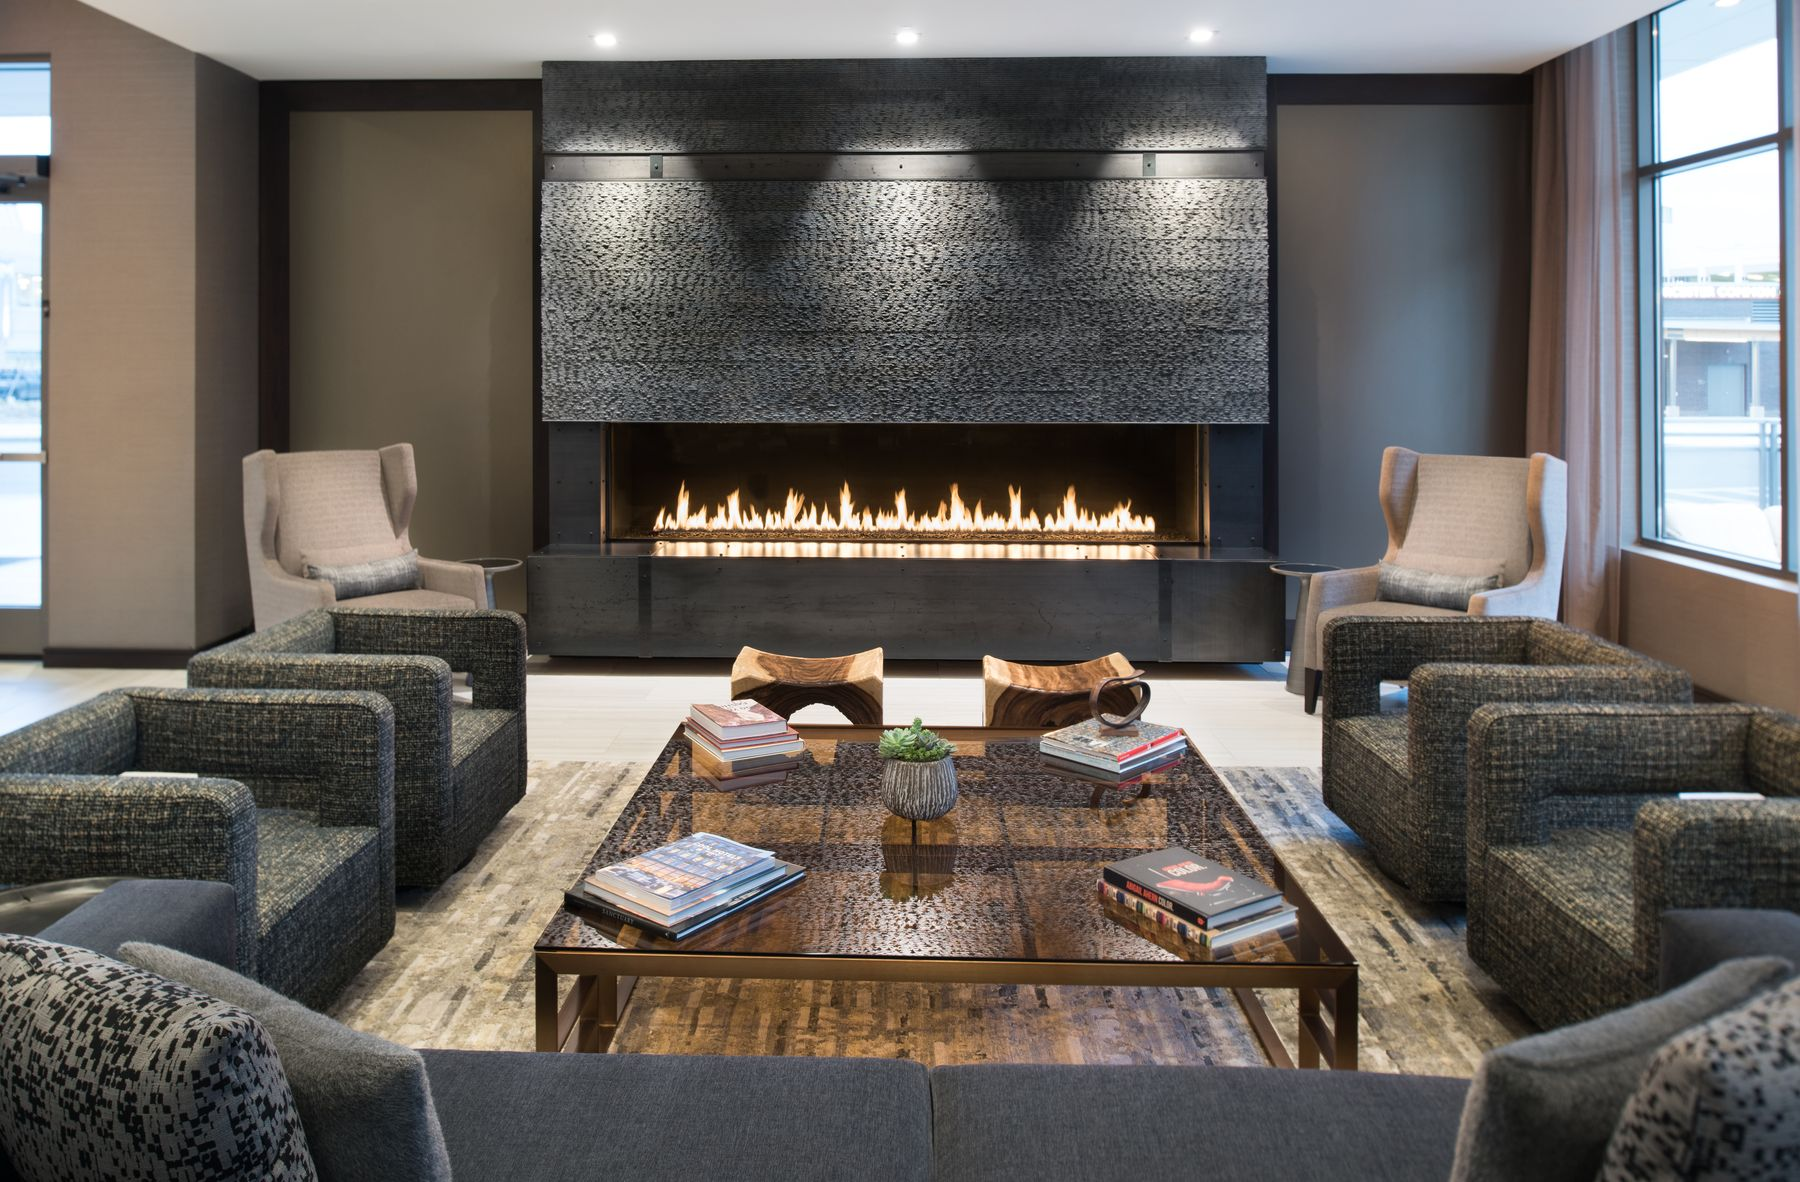 Lobby seating area with fire place